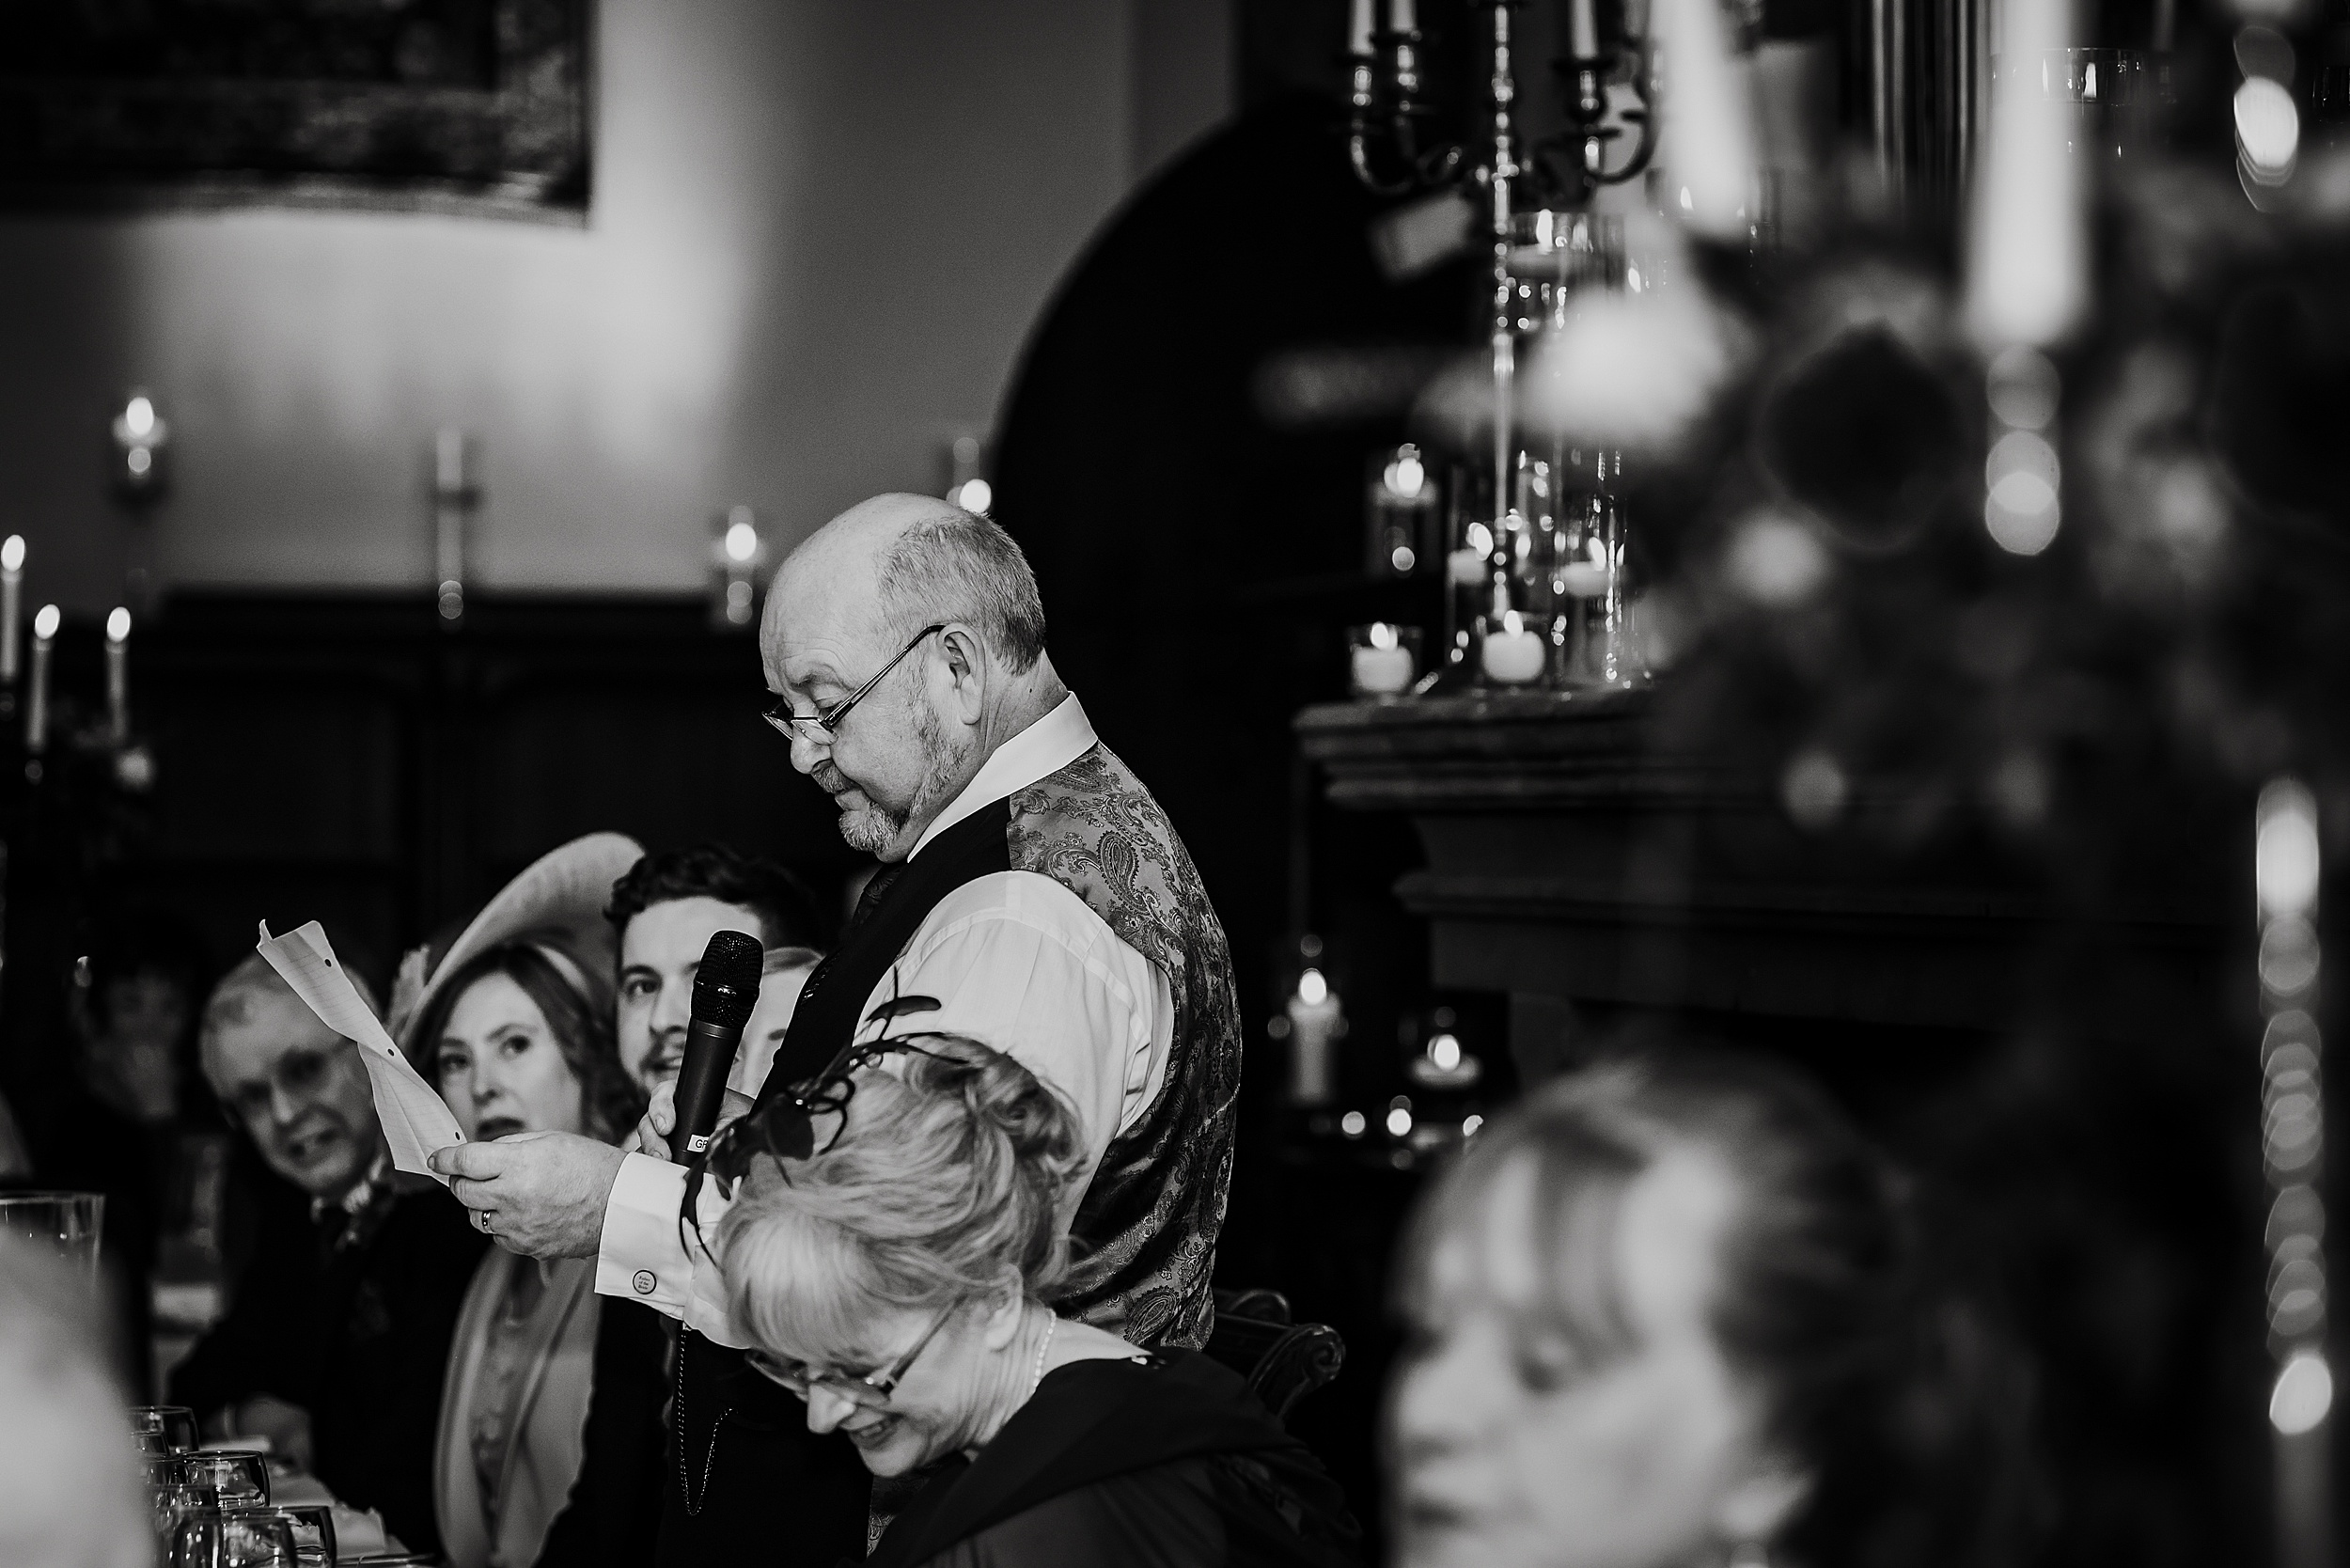 Peckforton_Castle_Cheshire_Toronto_Wedding_Photographer_UK_Destination_Wedding_0121.jpg